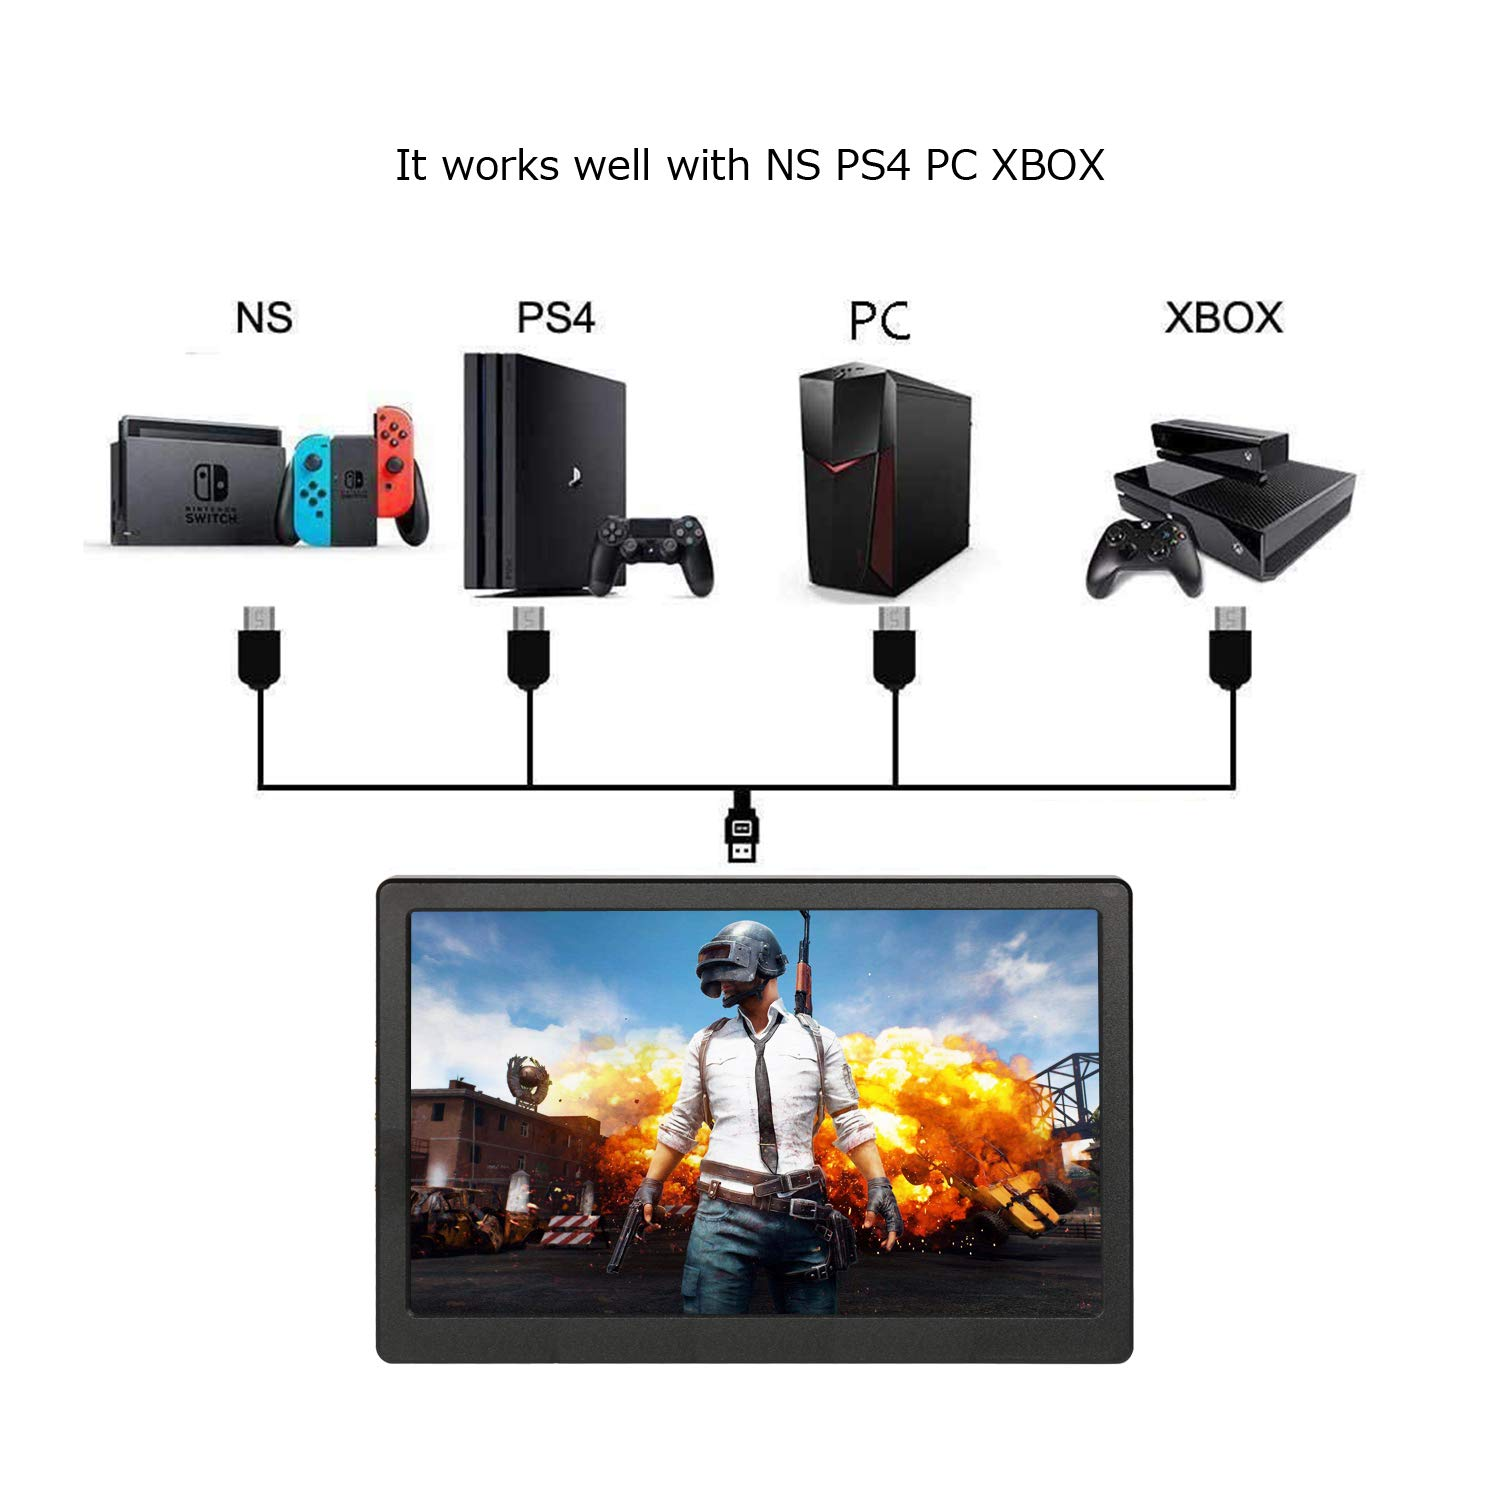 Portable Screen HDMI Monitor 1024×600 IPS Portable Display Monitor Built in Speaker for Raspberry Pi Computer Laptop PS3 PS4 Xbox one Ns xbox360 Black by UPERFECT (Image #5)